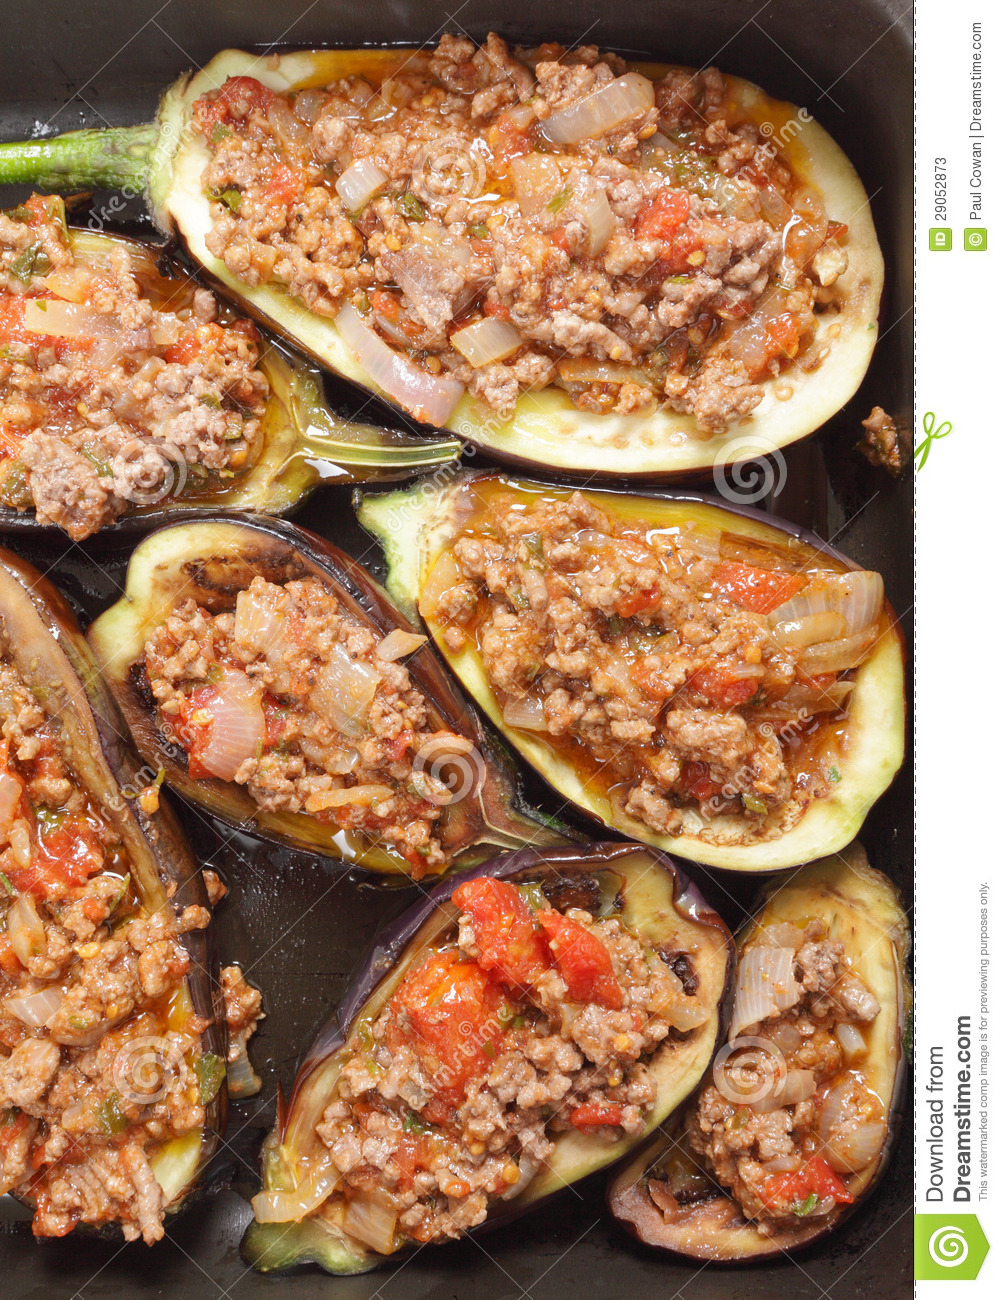 Eggplants Stuffed With Meat Sauce Stock Photos - Image: 29052873